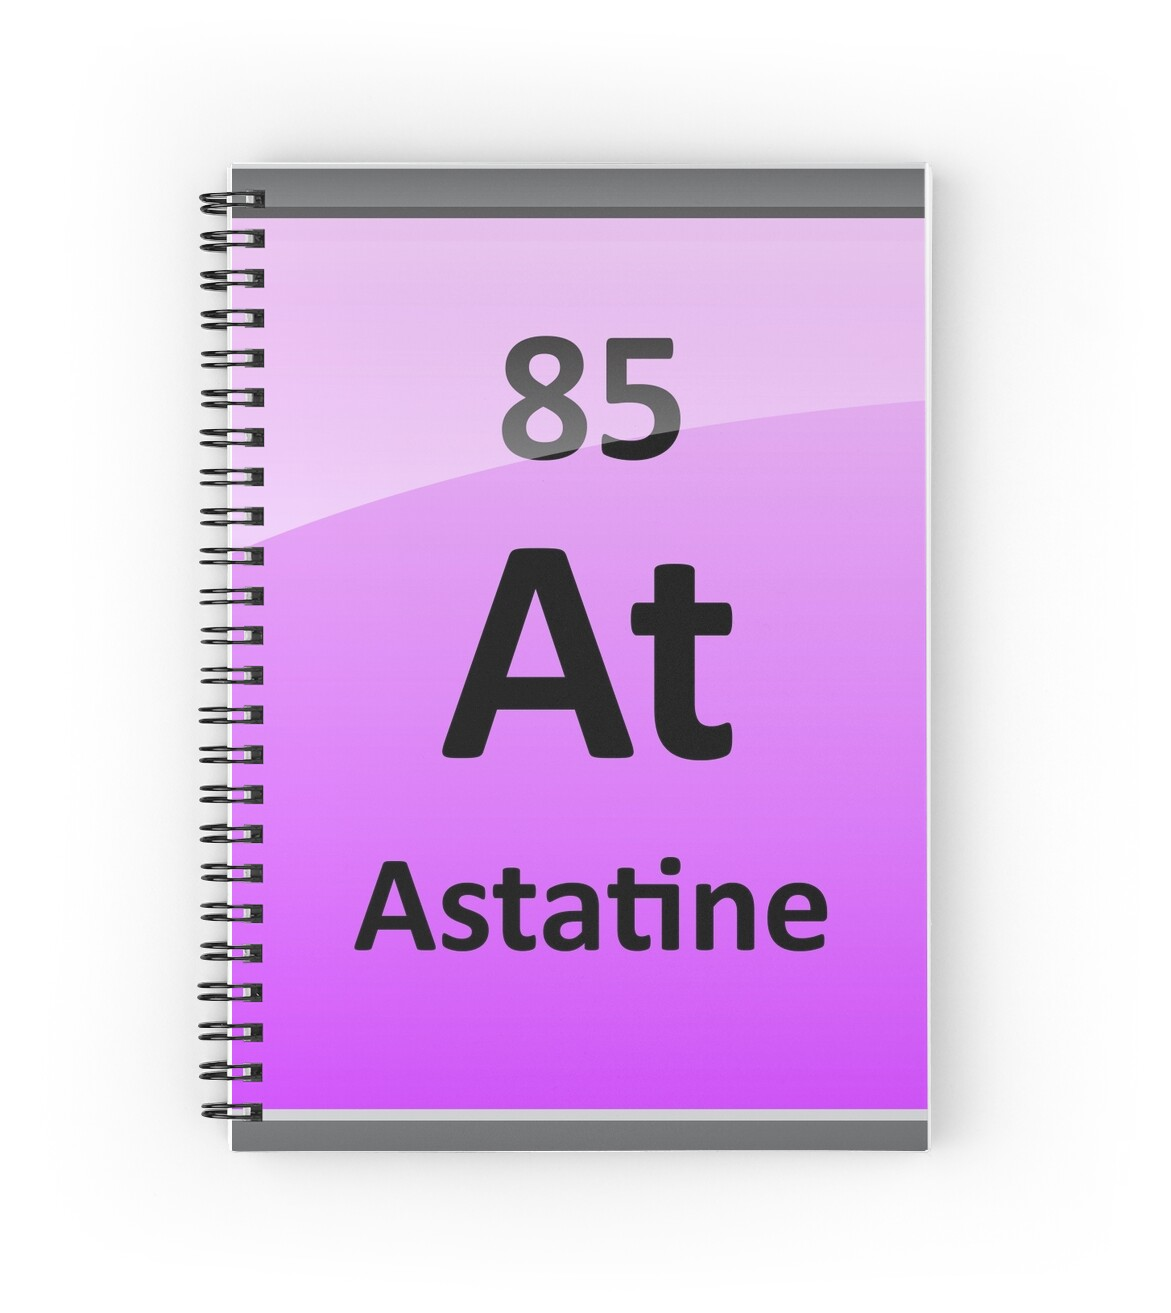 Astatine periodic table element symbol spiral notebooks by astatine periodic table element symbol by sciencenotes gamestrikefo Gallery